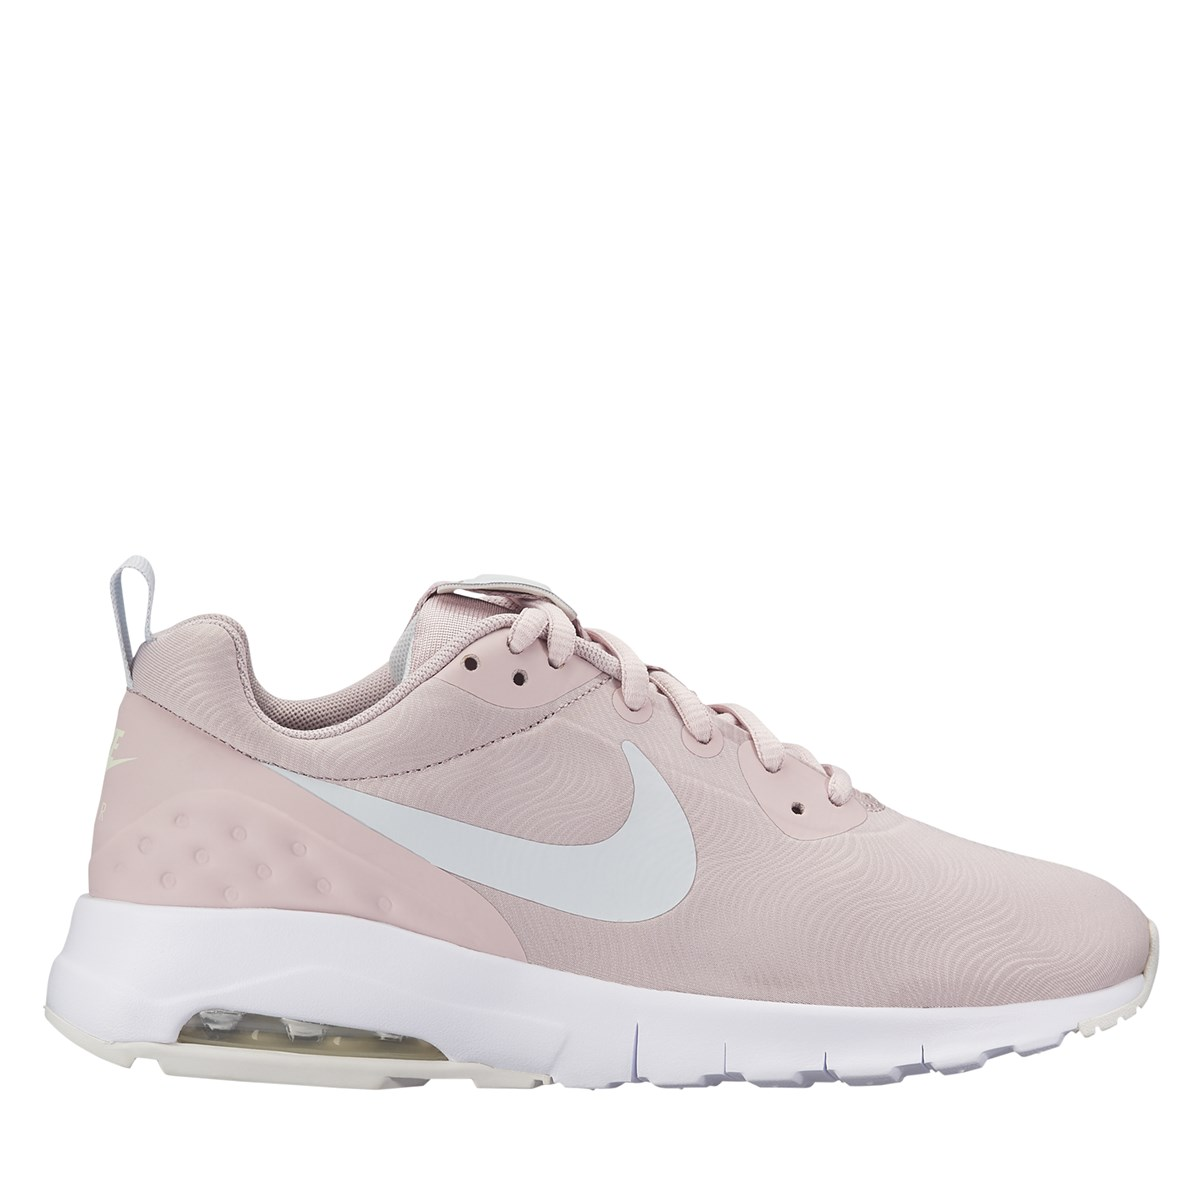 Women's Air Max Motion LW SE Particle Sneaker